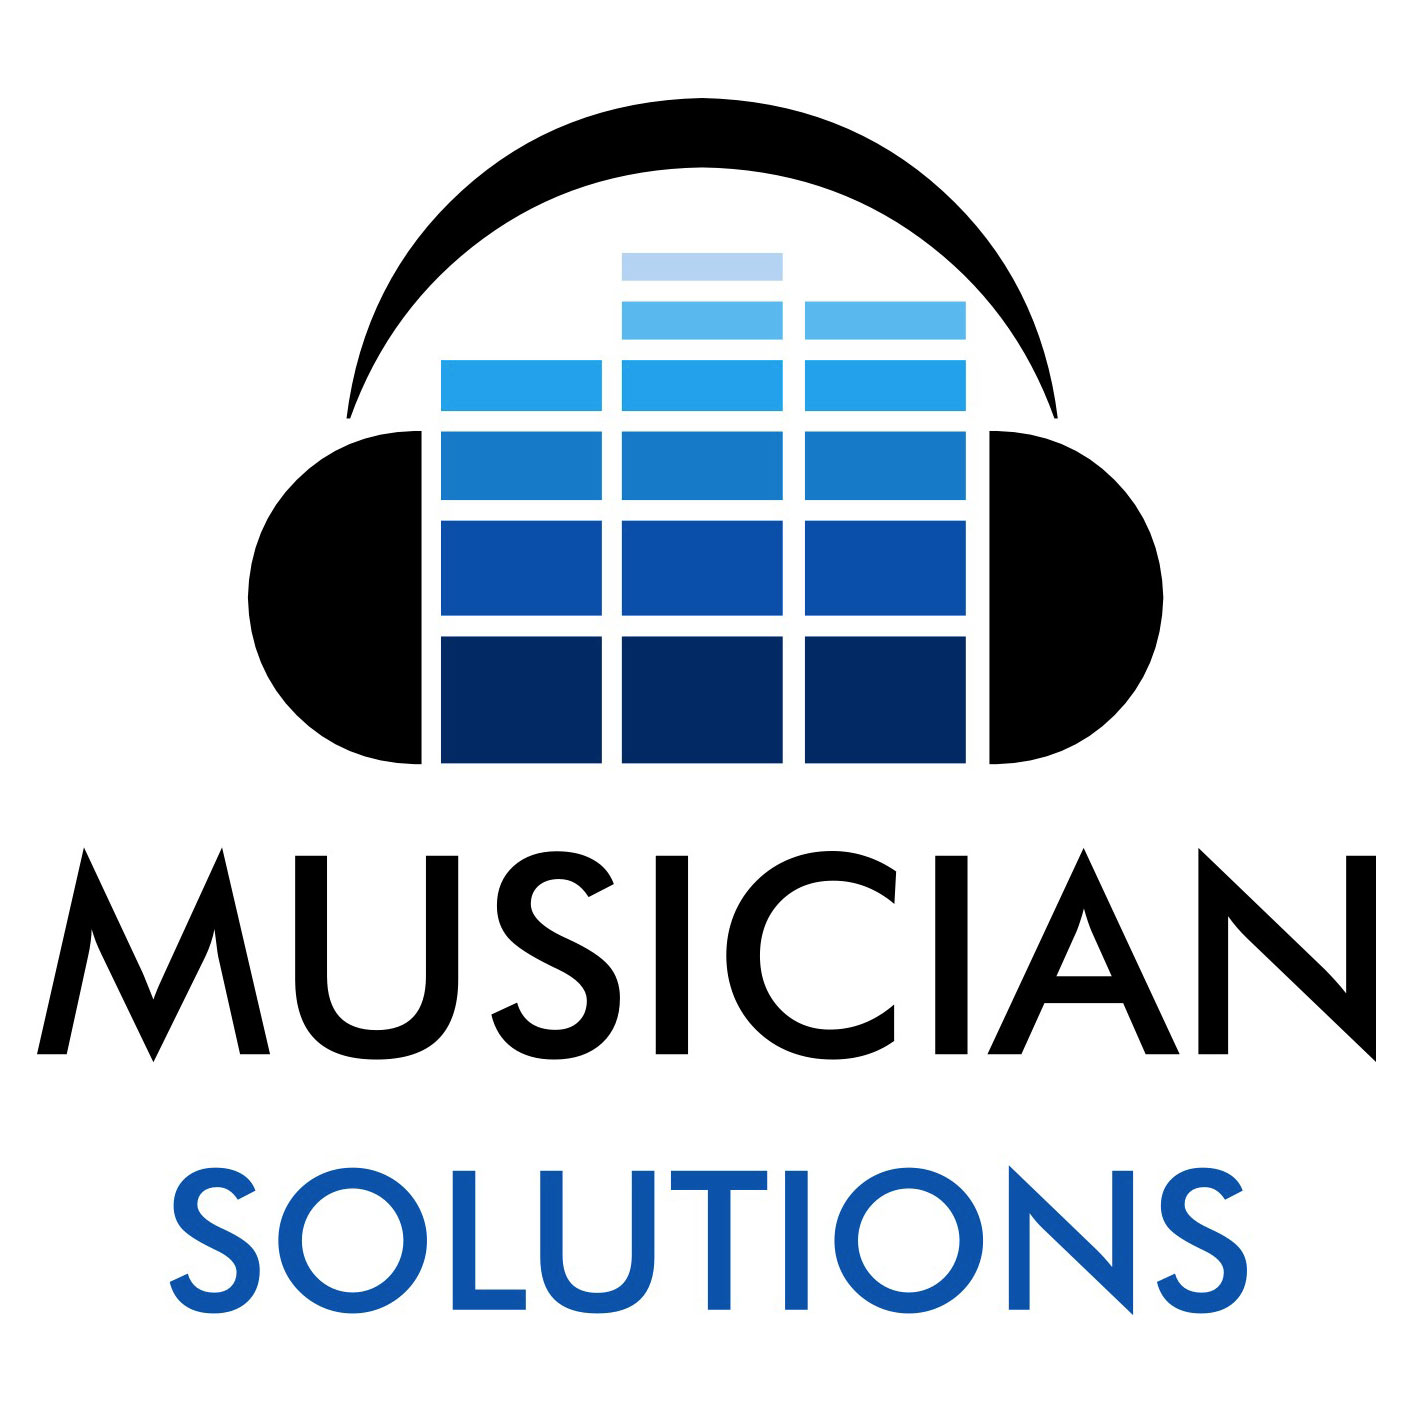 MUSICIAN SOLUTIONS